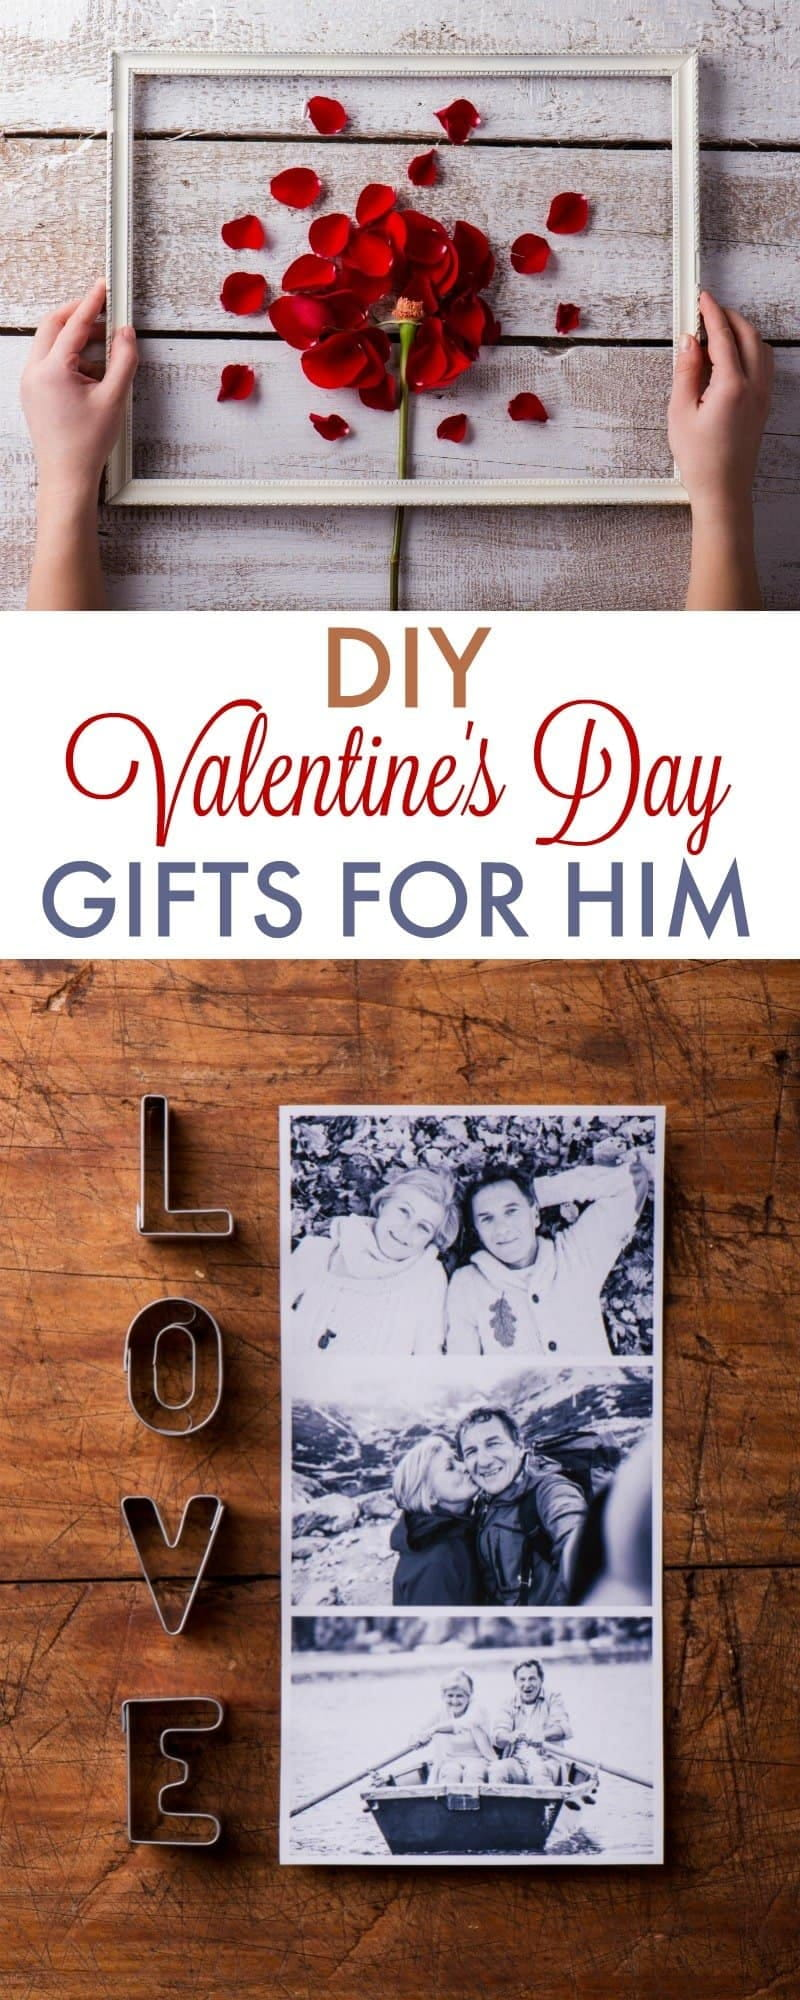 Make your guy something special with these DIY Valentine's Day gifts for boyfriend, husband or significant other. Cute ideas for a special romantic day!